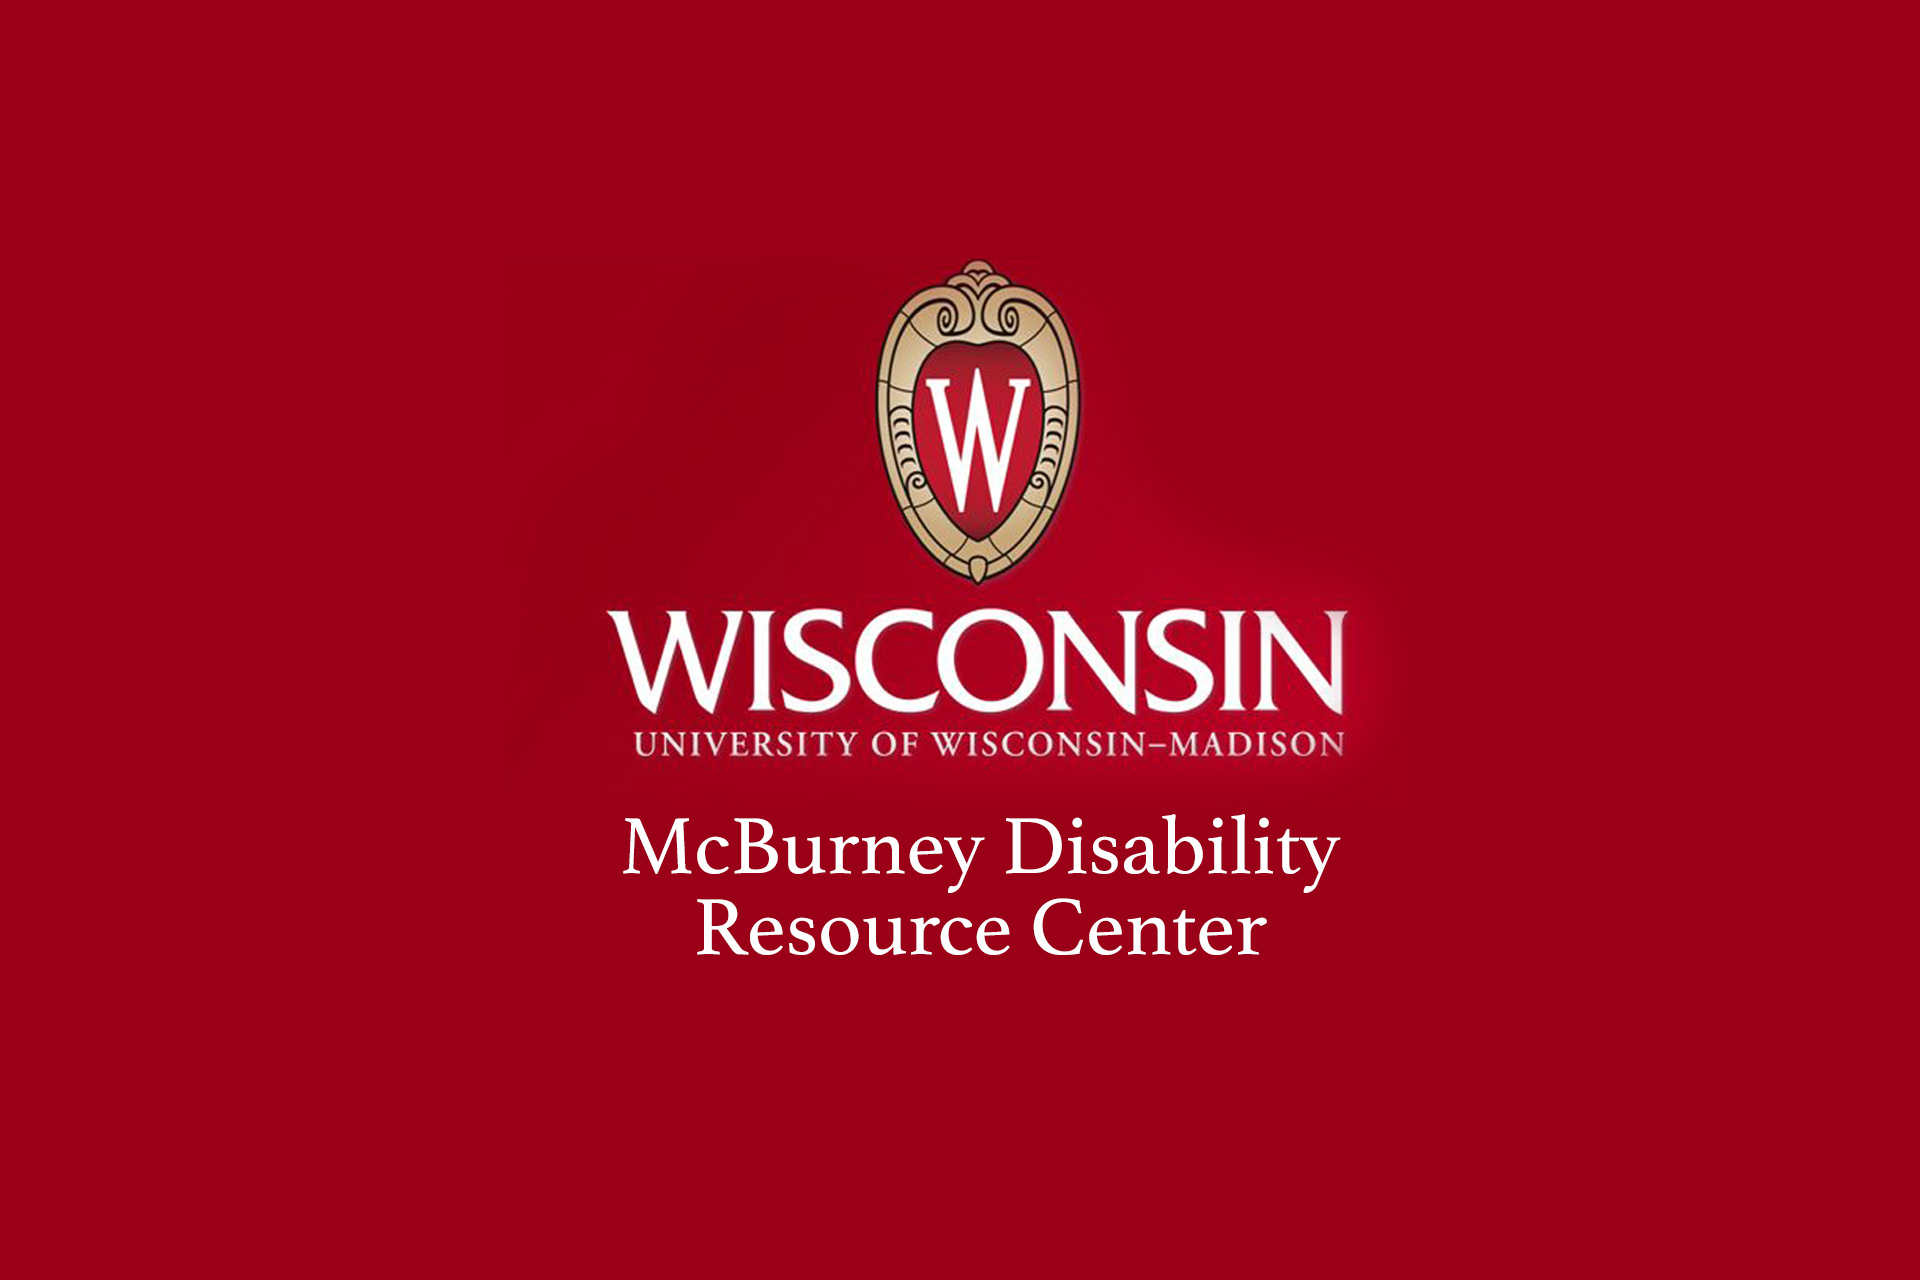 McBurney Disability Resource Center, Division of Student Life, UW-Madison